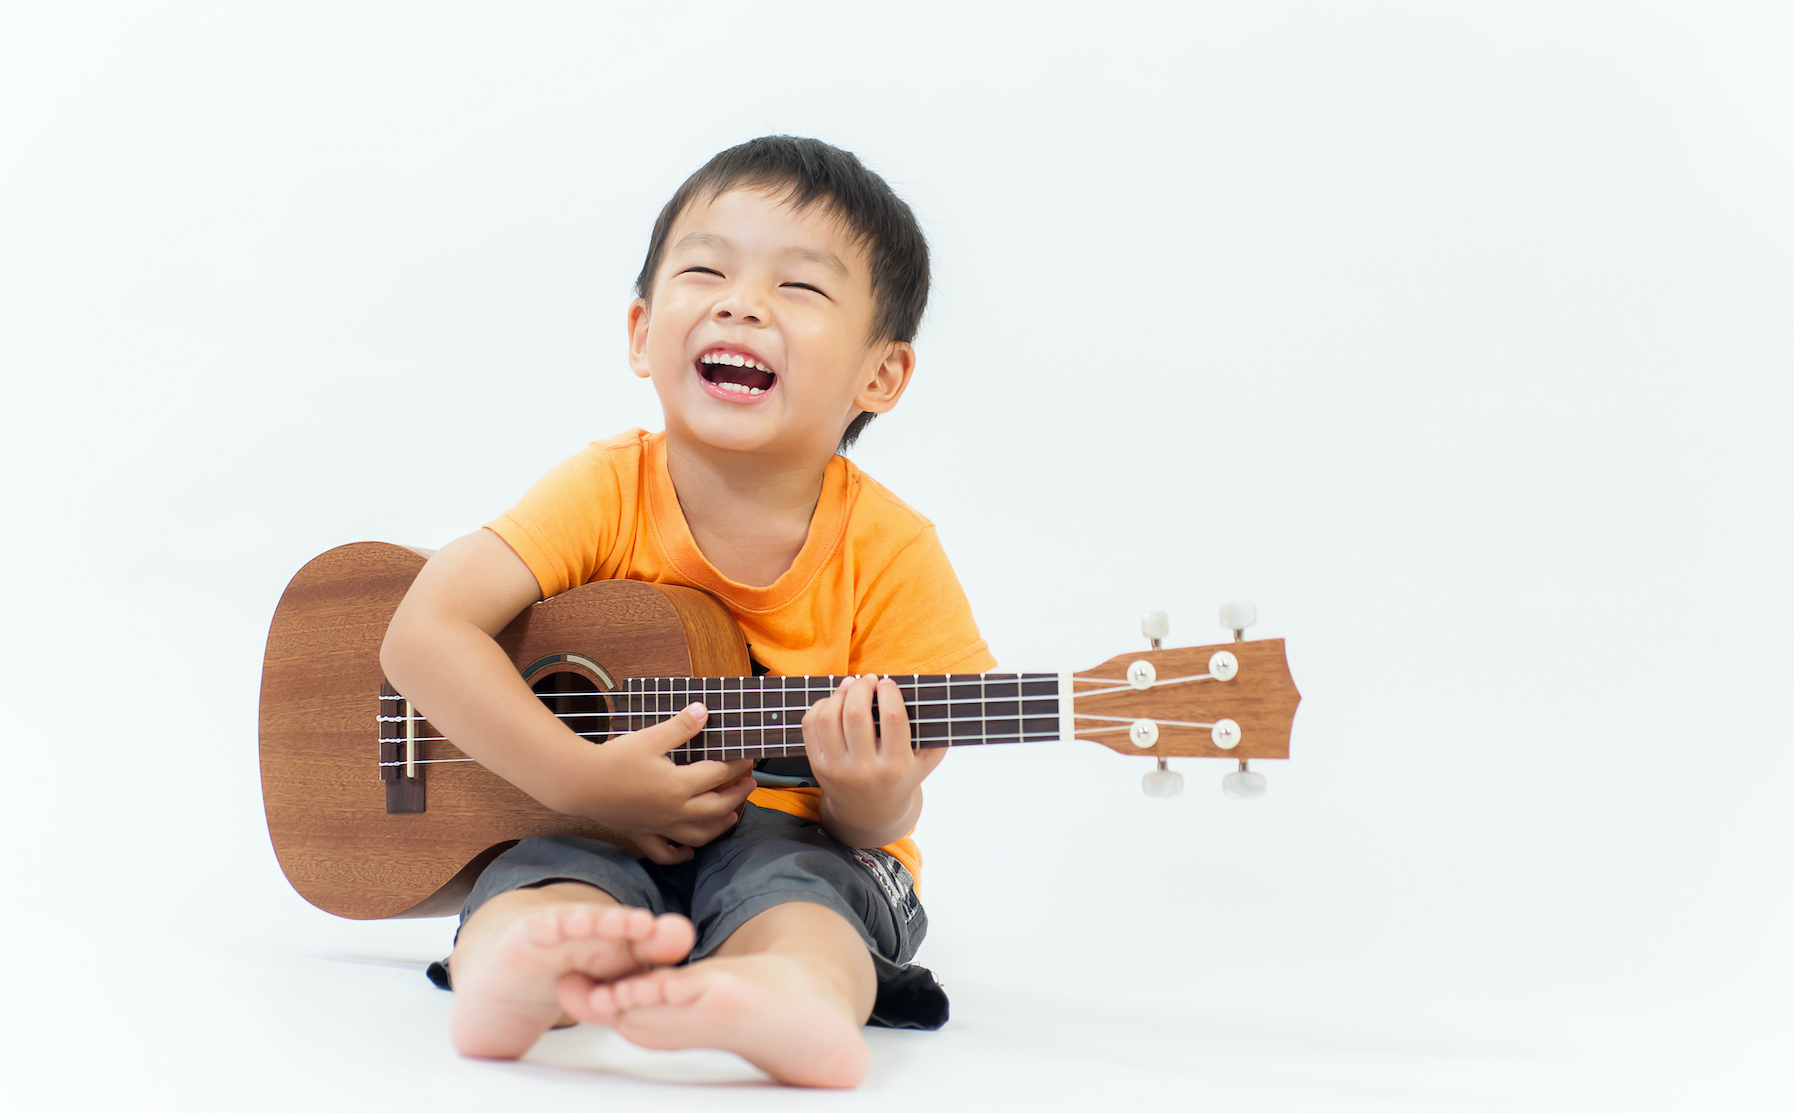 Toddler Music Lessons Aren't the Best Idea